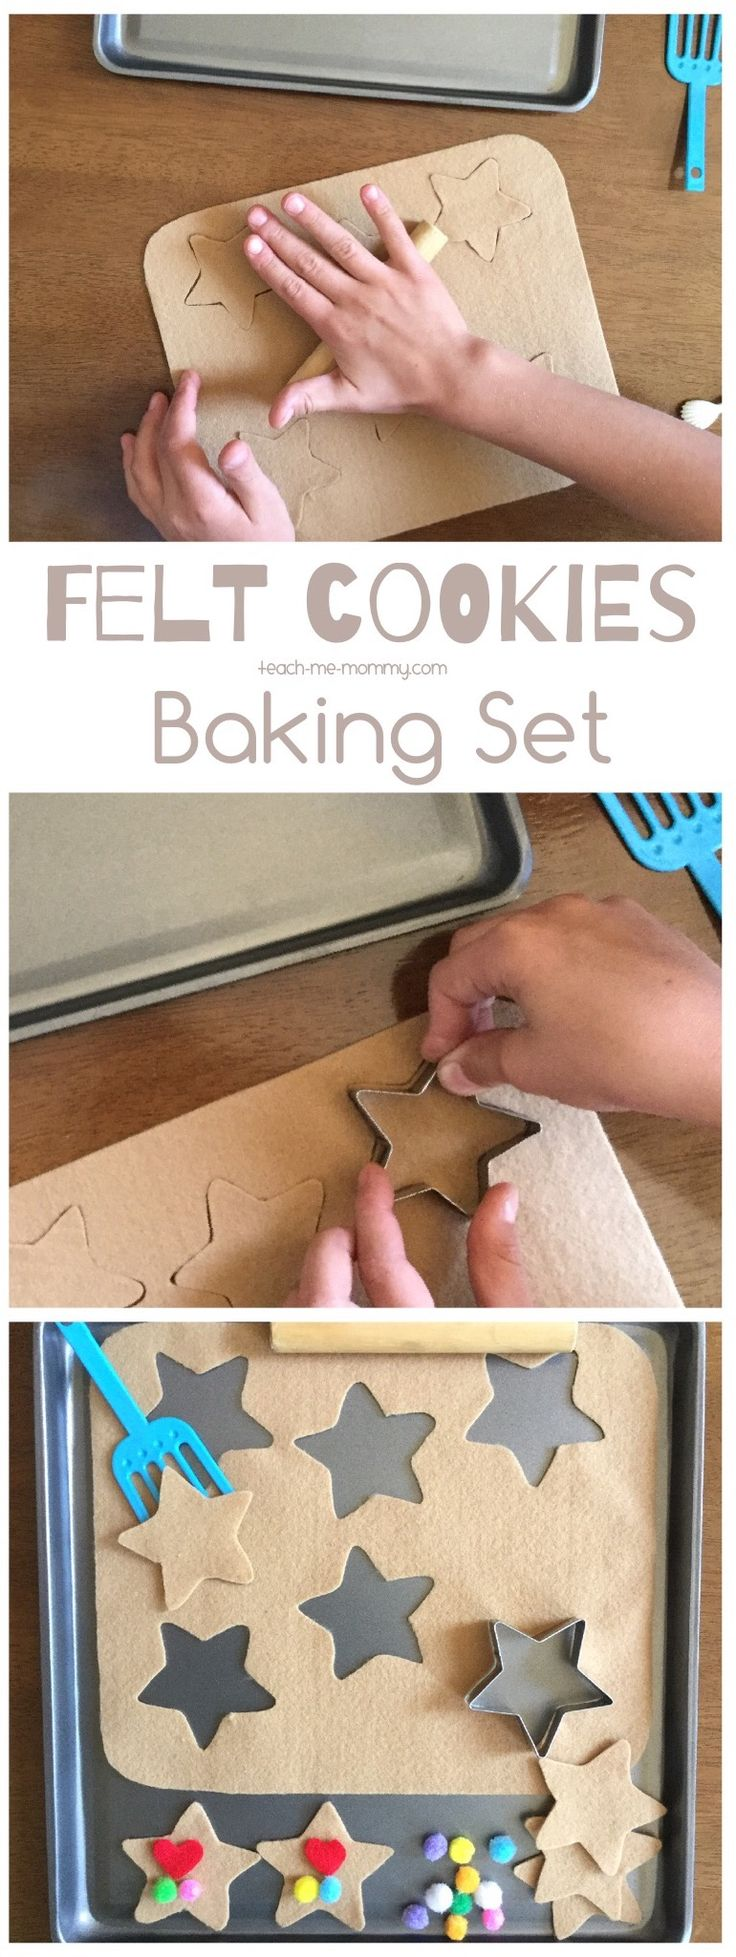 Make a batch of these sweet felt cookies with your little bakers! A sweet way to work on fine motor skills, counting or just enjoying pretend play during quiet time. #busybags #pretendplay